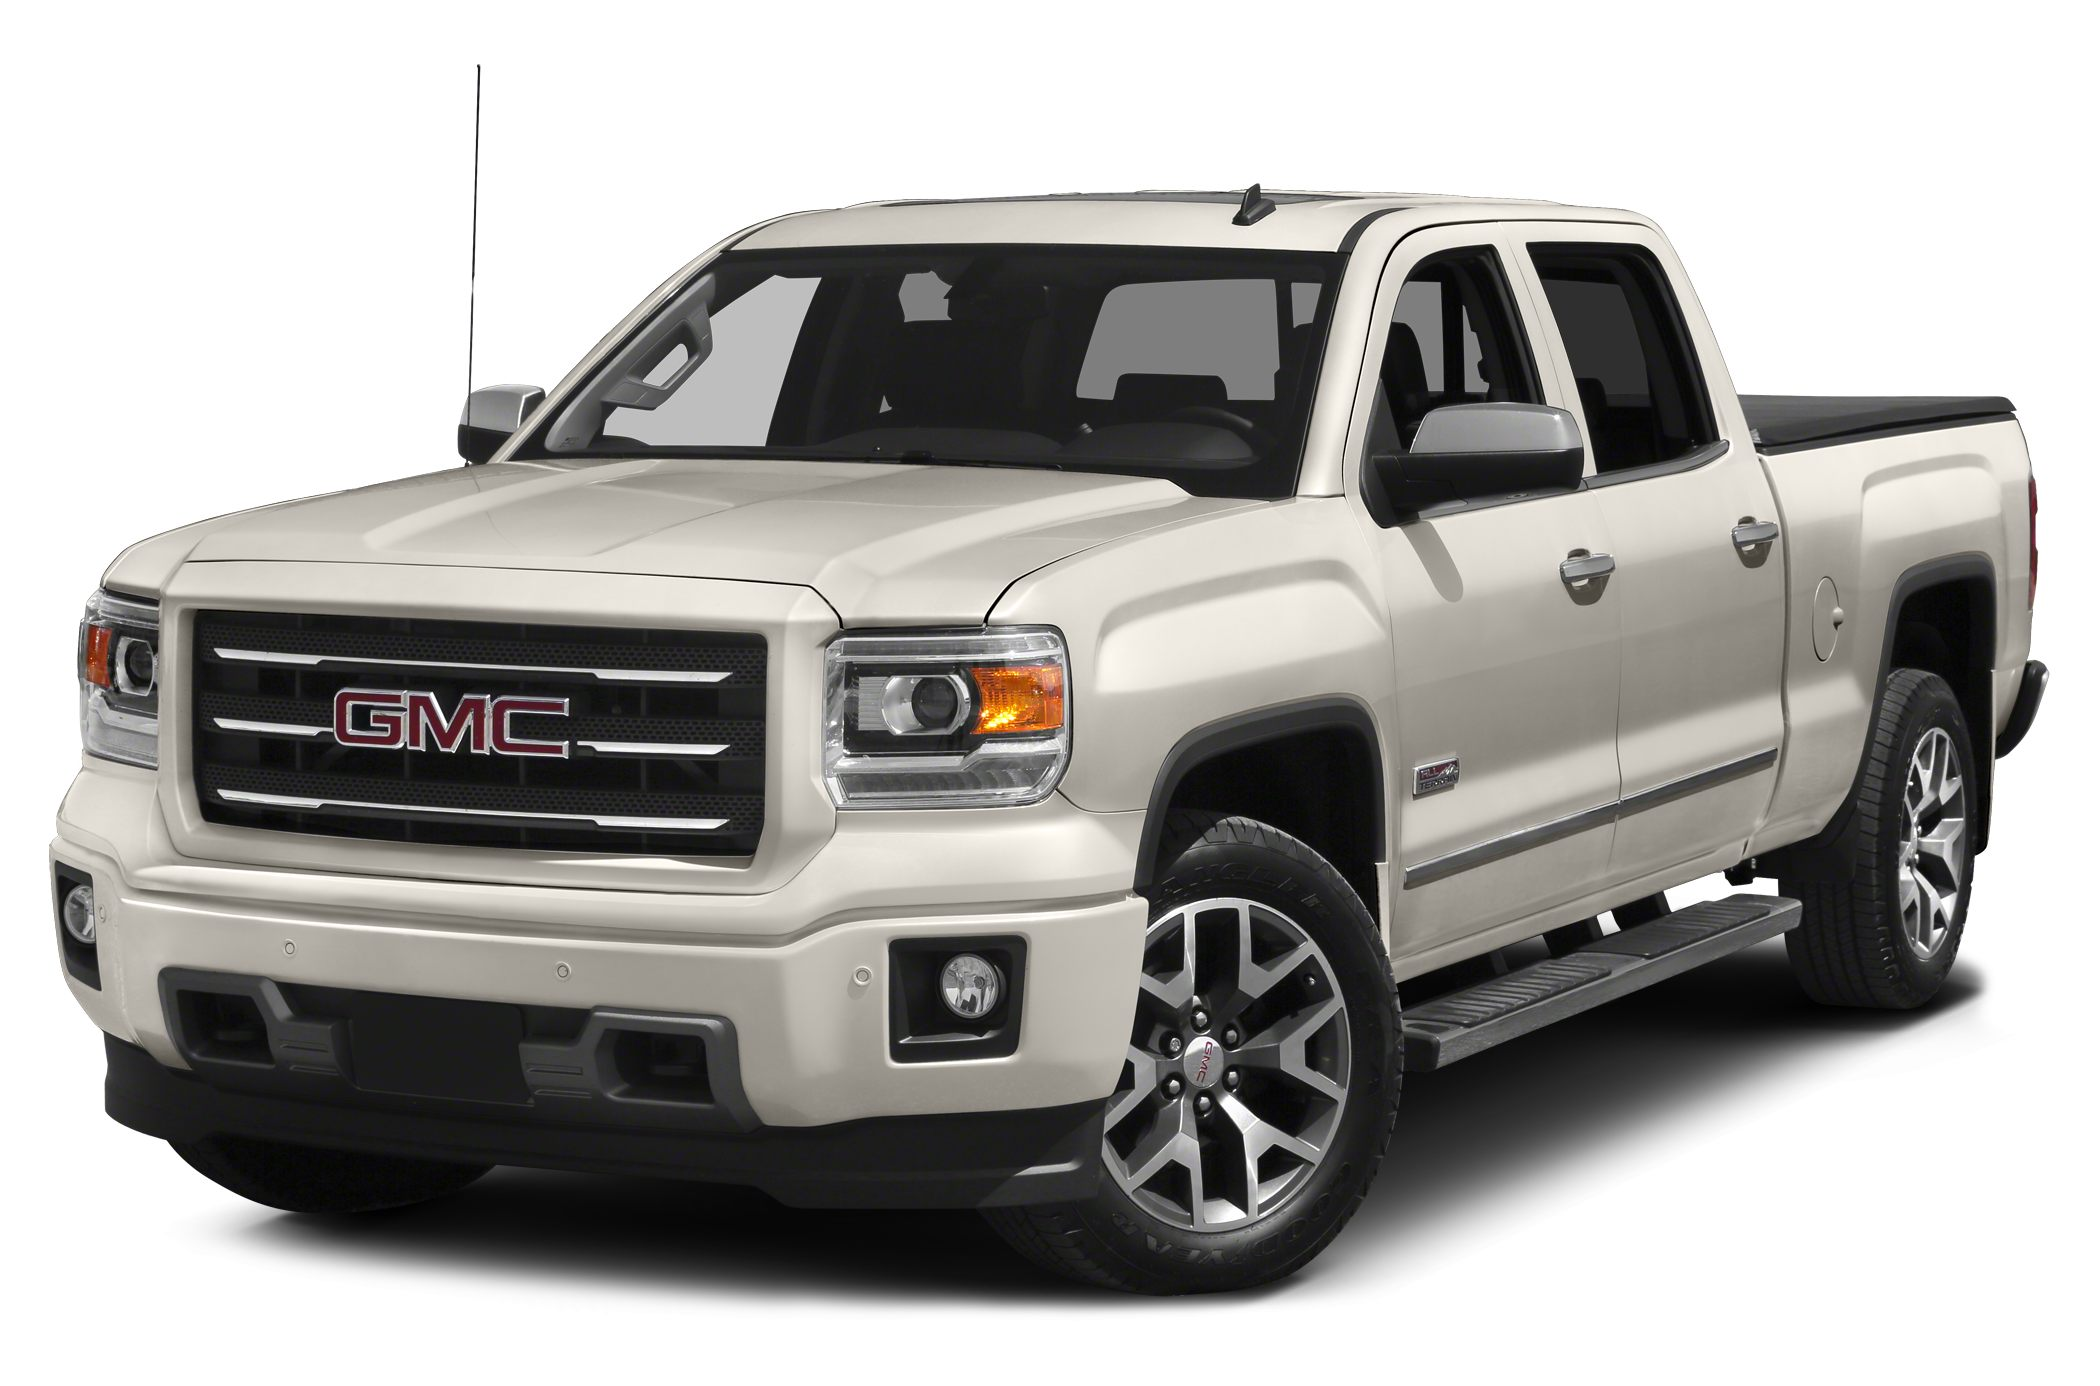 2015 GMC Sierra 1500 SLT New Arrival 4WD Low miles for a 2015 Bluetooth Auto Climate Control